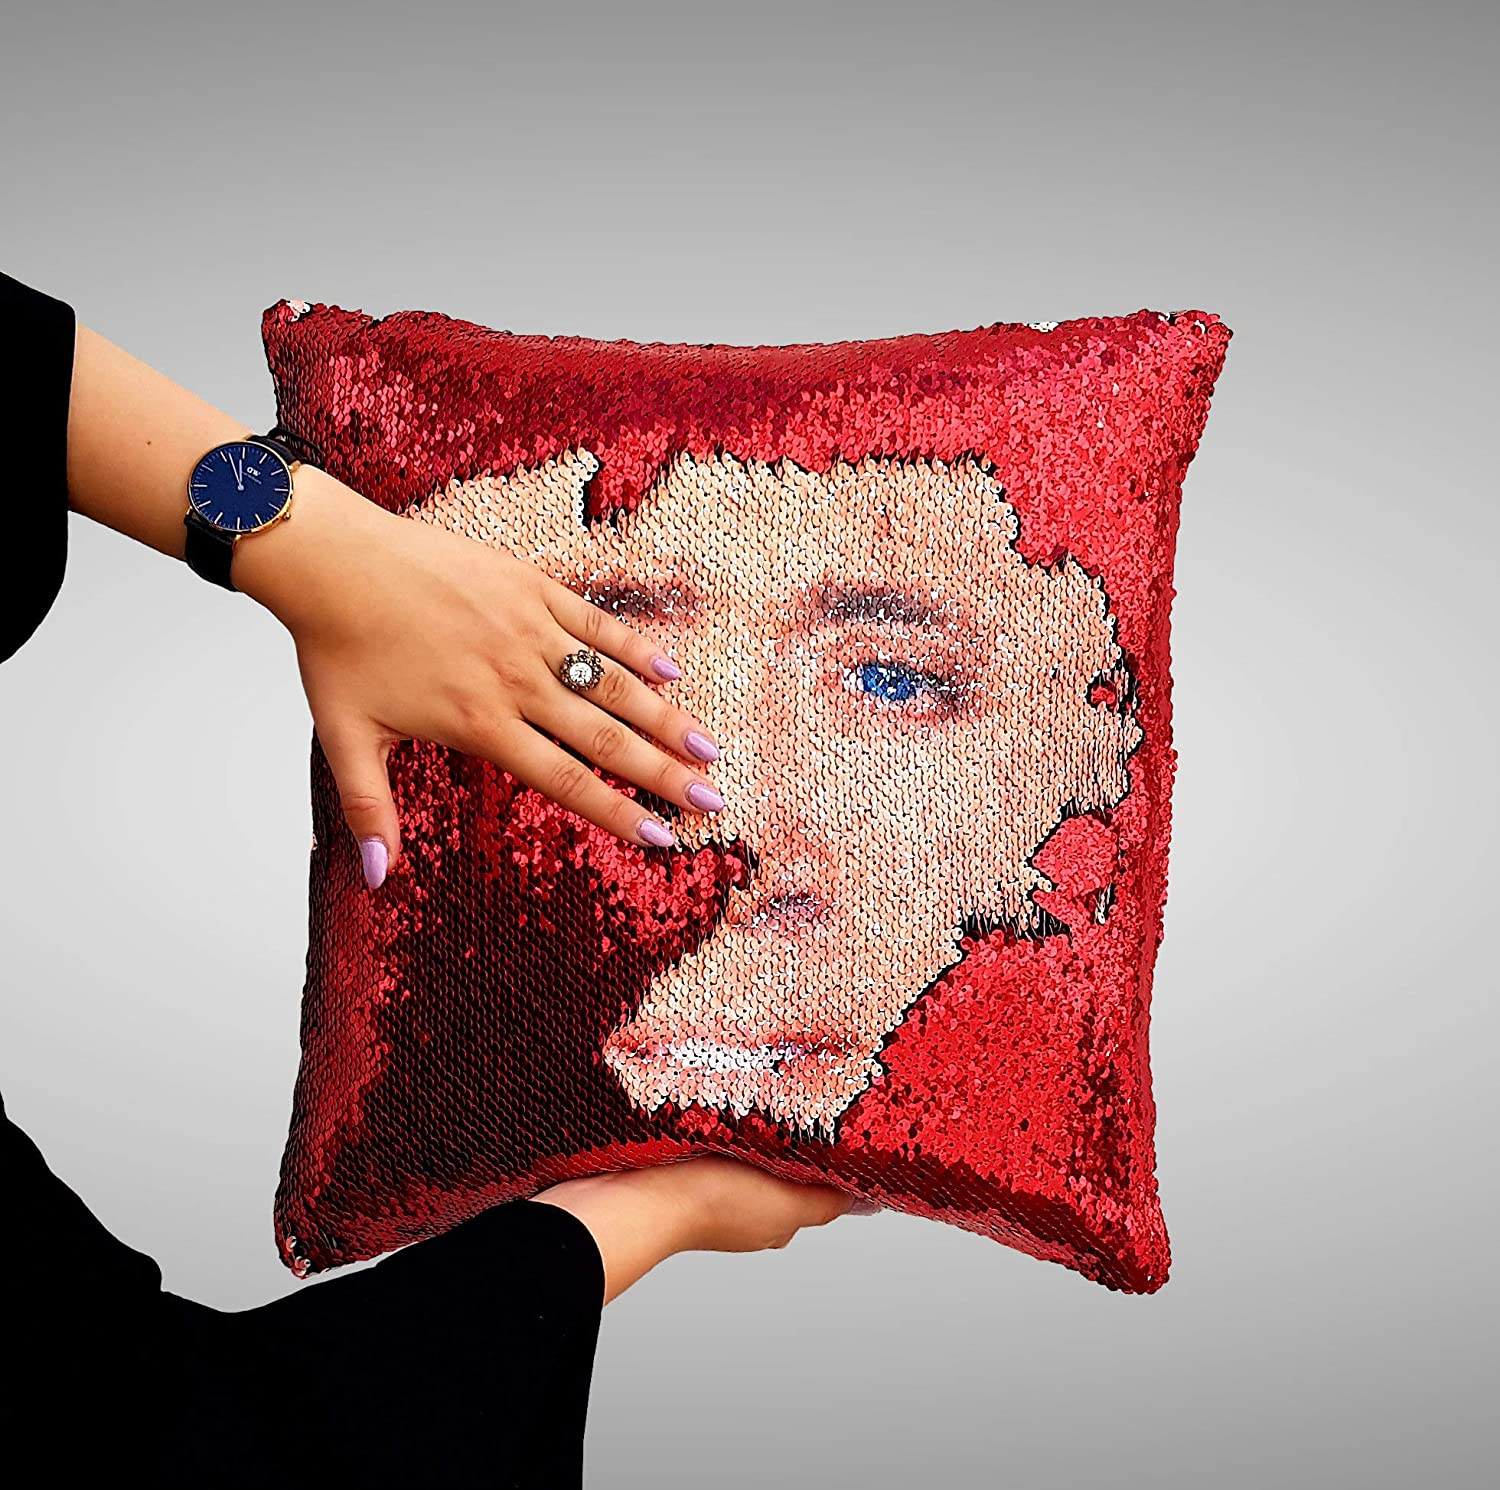 Nicolas Cage face Sequin Pillow, Sequin Pillowcase, Two Color Pillow, Fift for her, Gift for him, Magic Pillow, Mermaid Pillow, Scales Pillow Cover